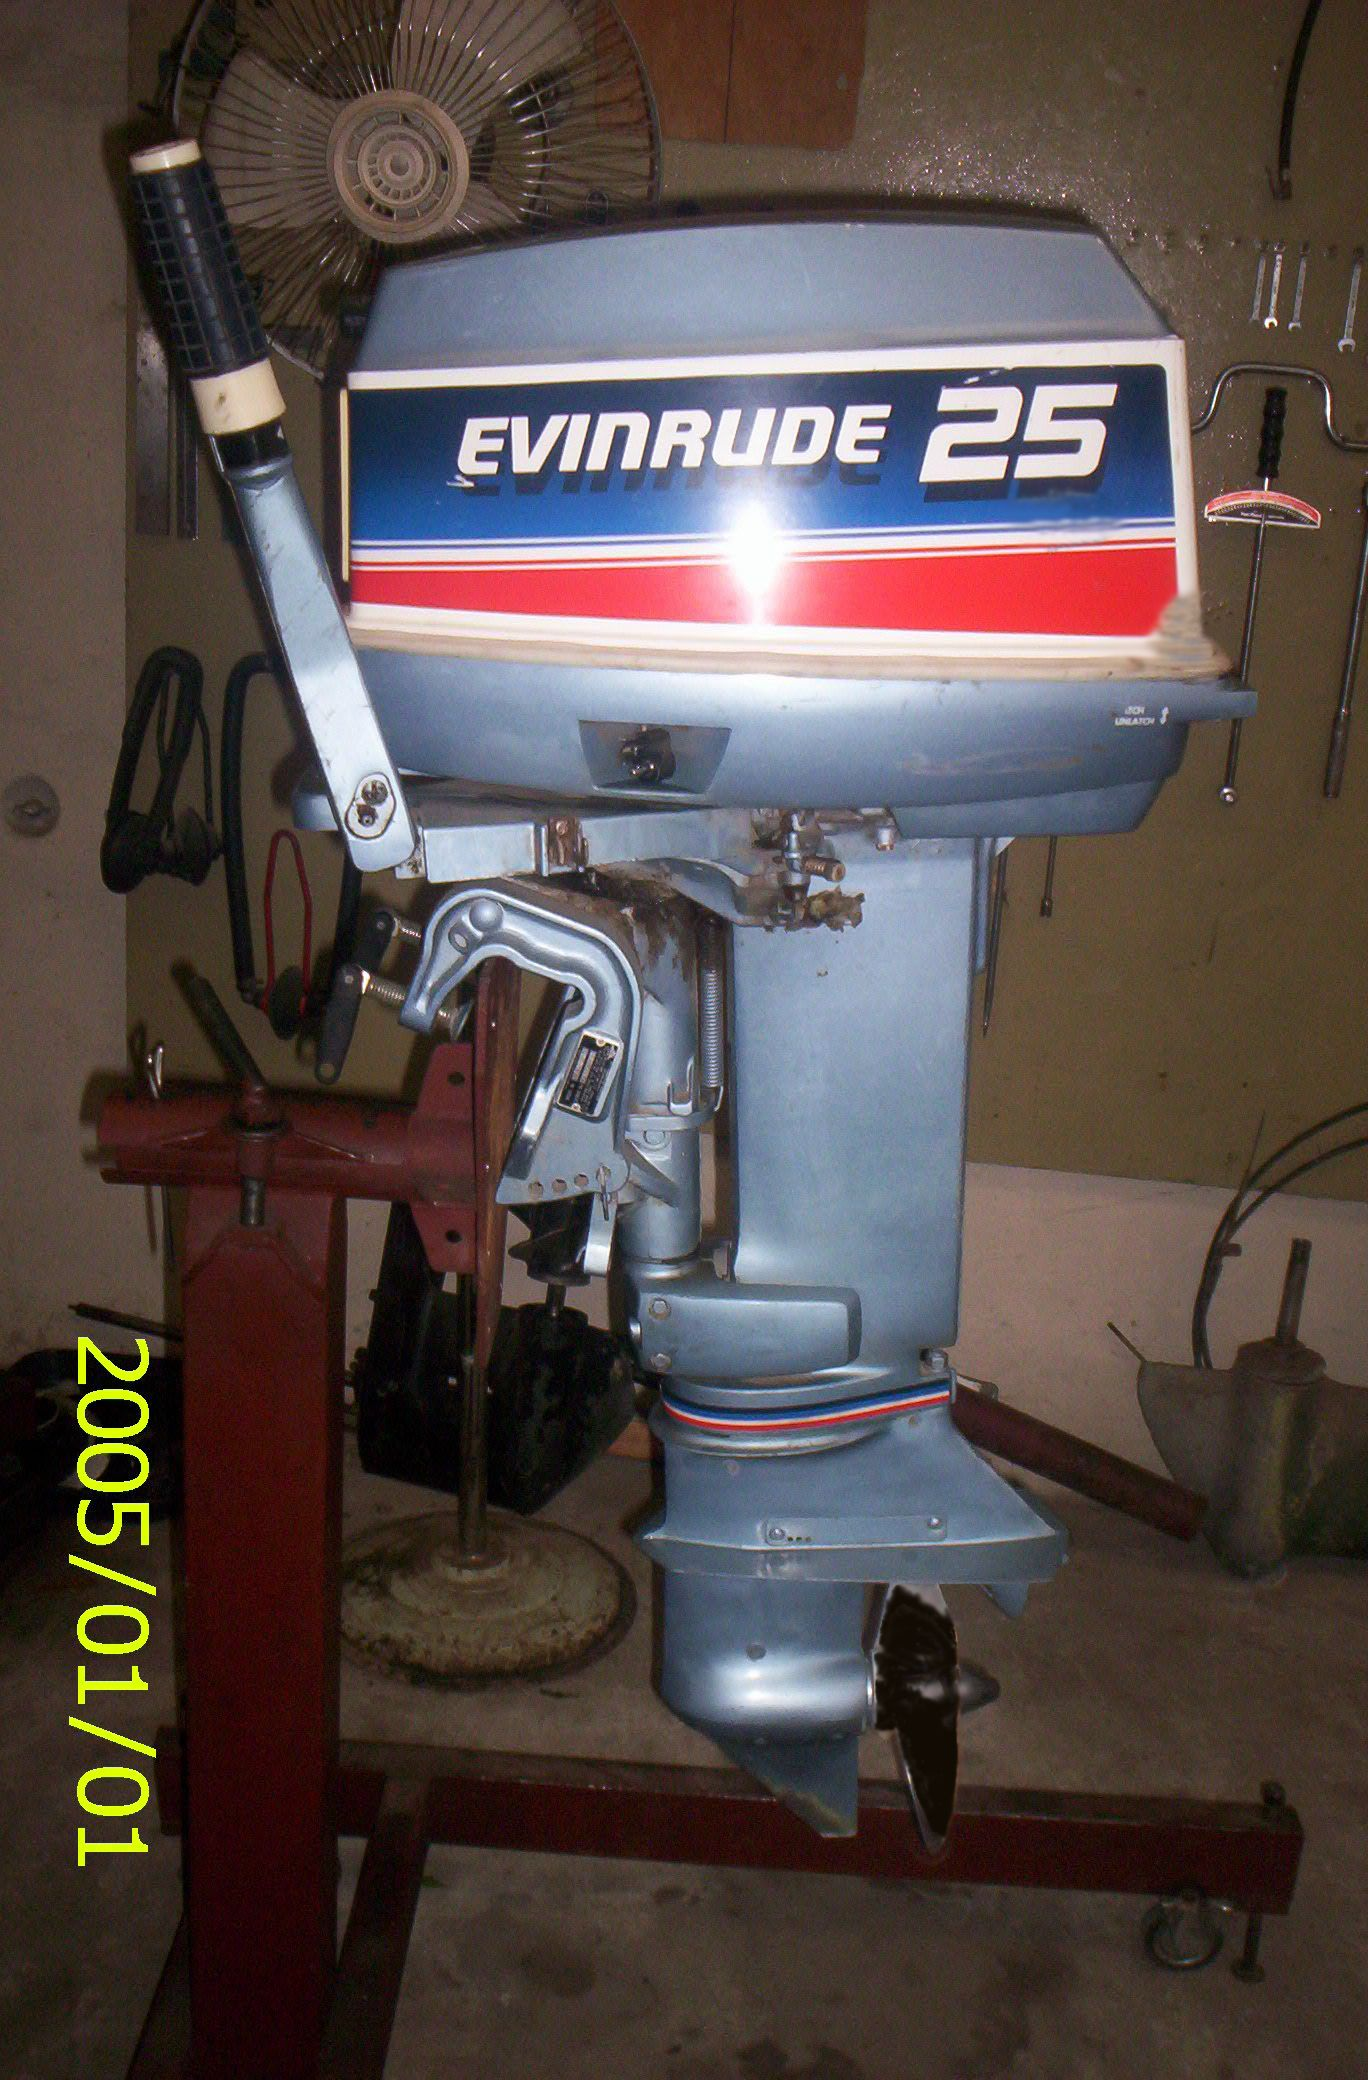 C E Af C D D F Eddc Grande additionally Sell Evinrude Ocean Pro furthermore Side further S L as well . on evinrude 25 hp outboard